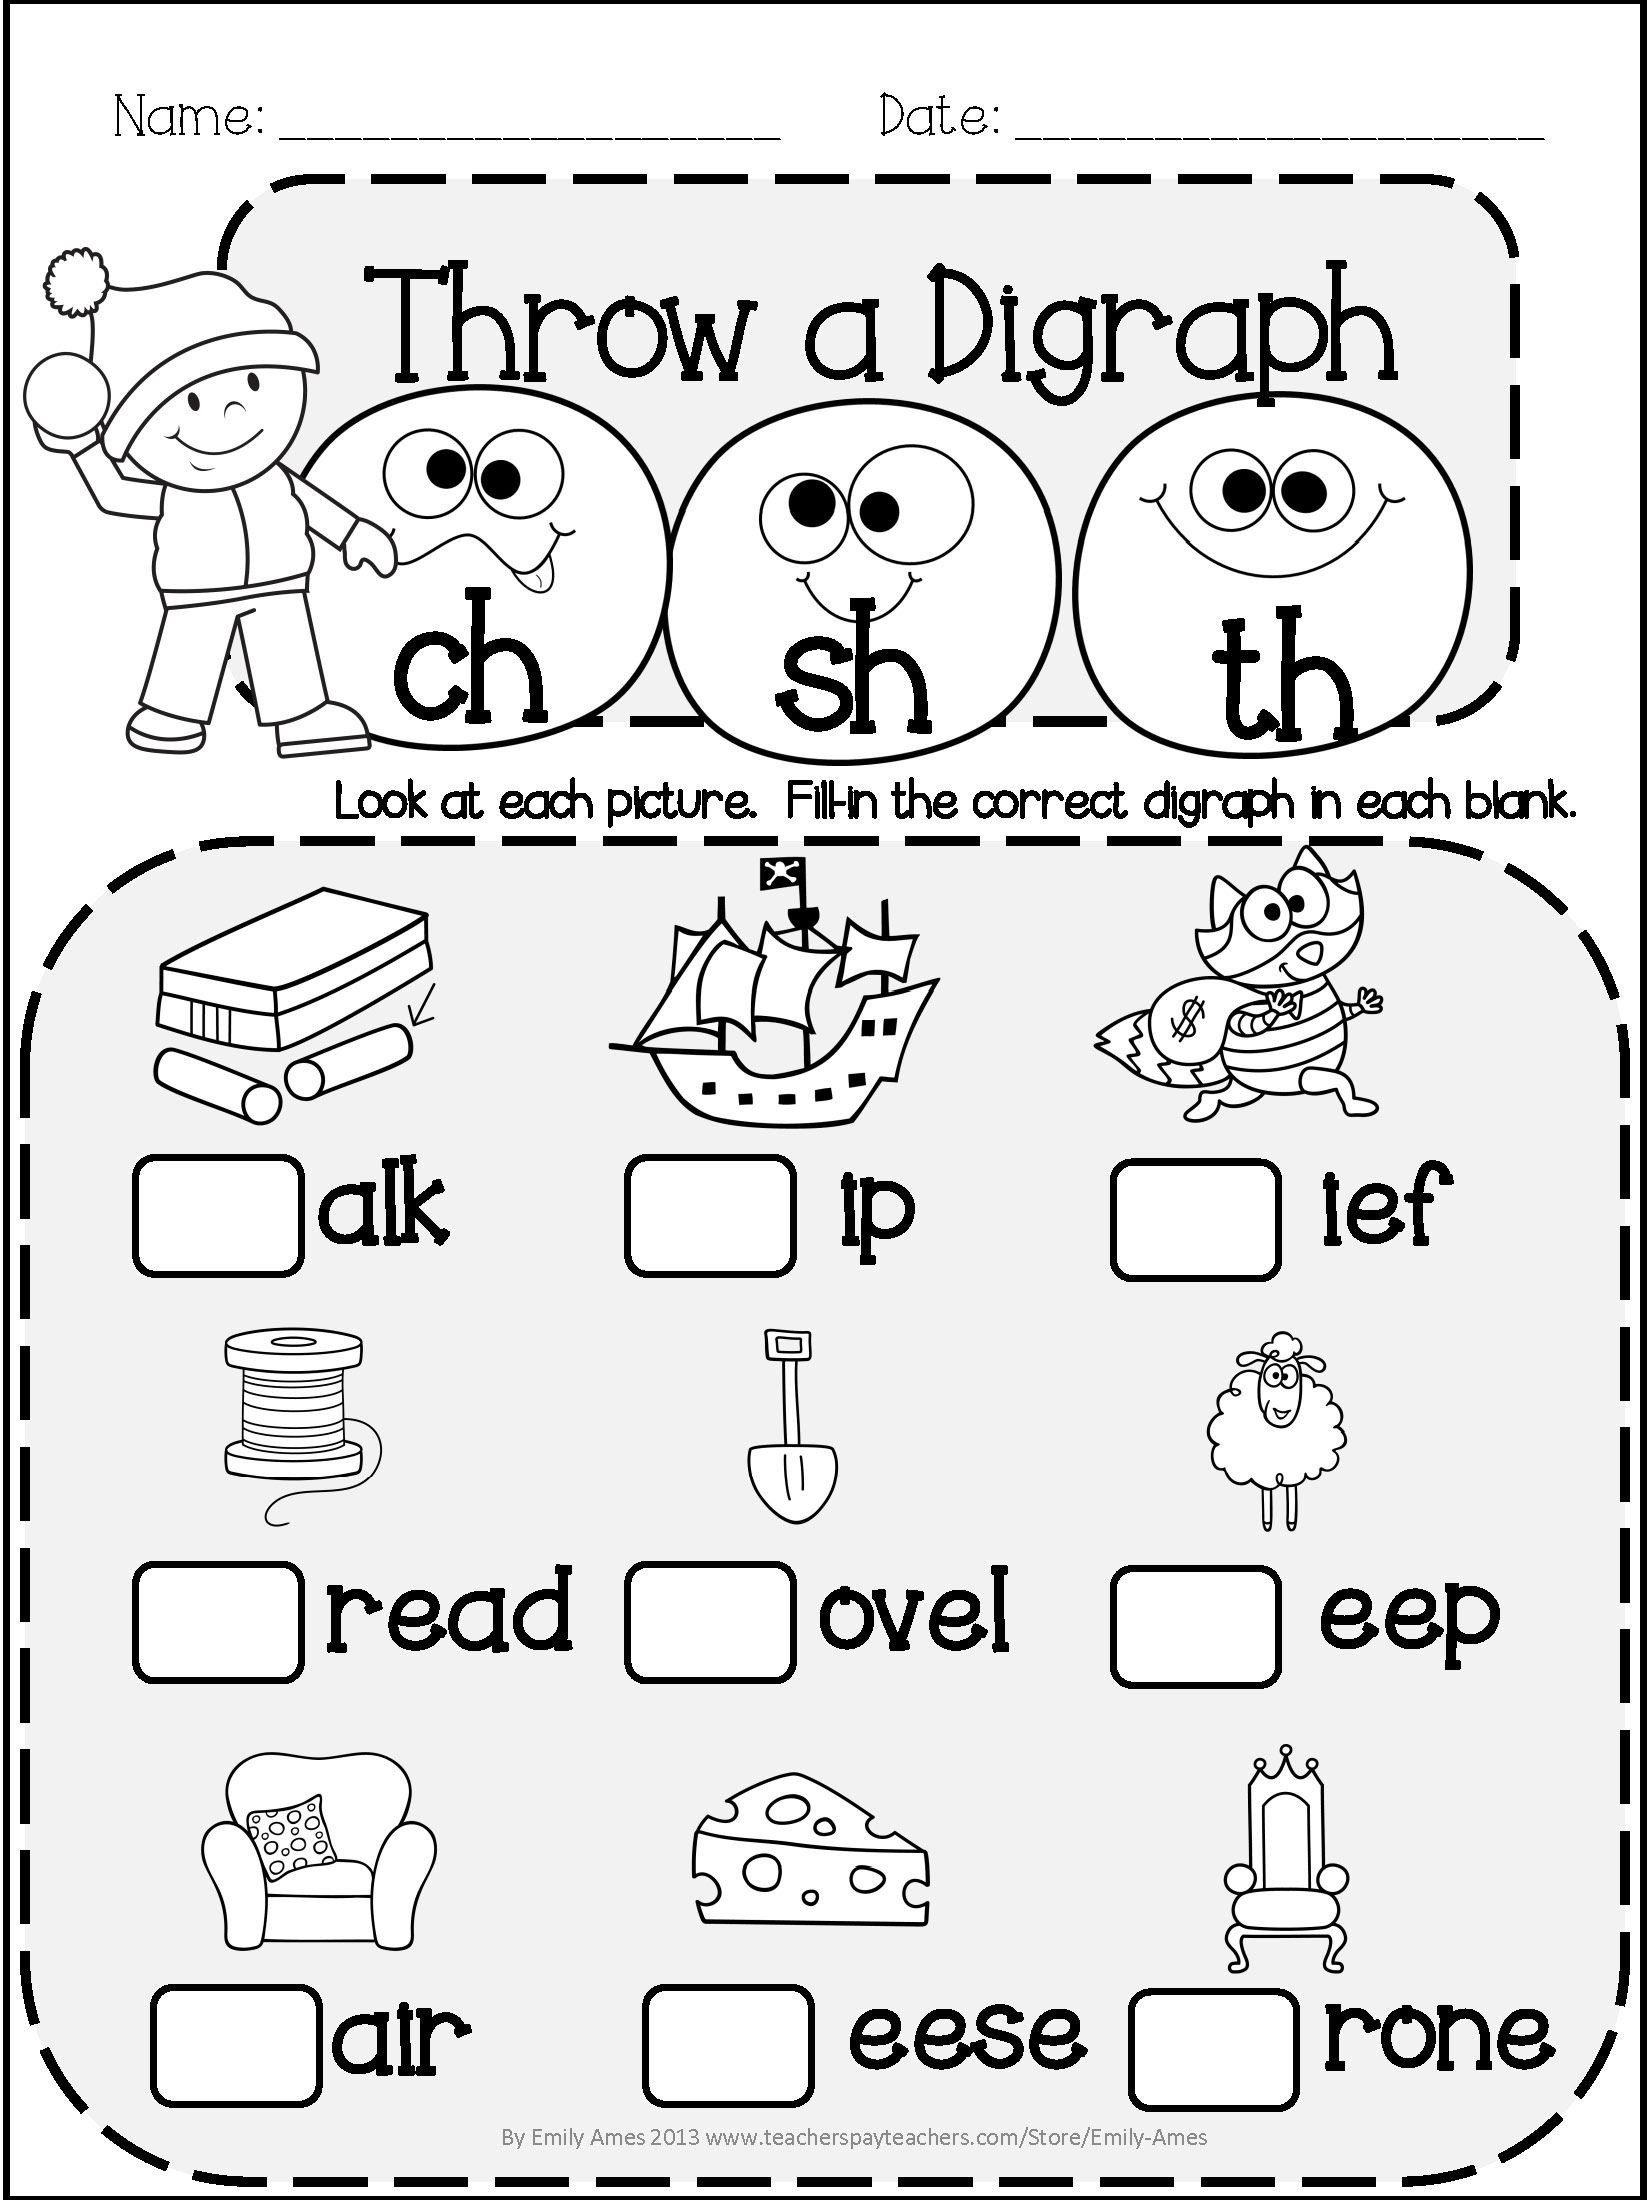 Th Worksheets for Kindergarten Elegant Digraph Worksheet Educational Free Wh Worksheets for